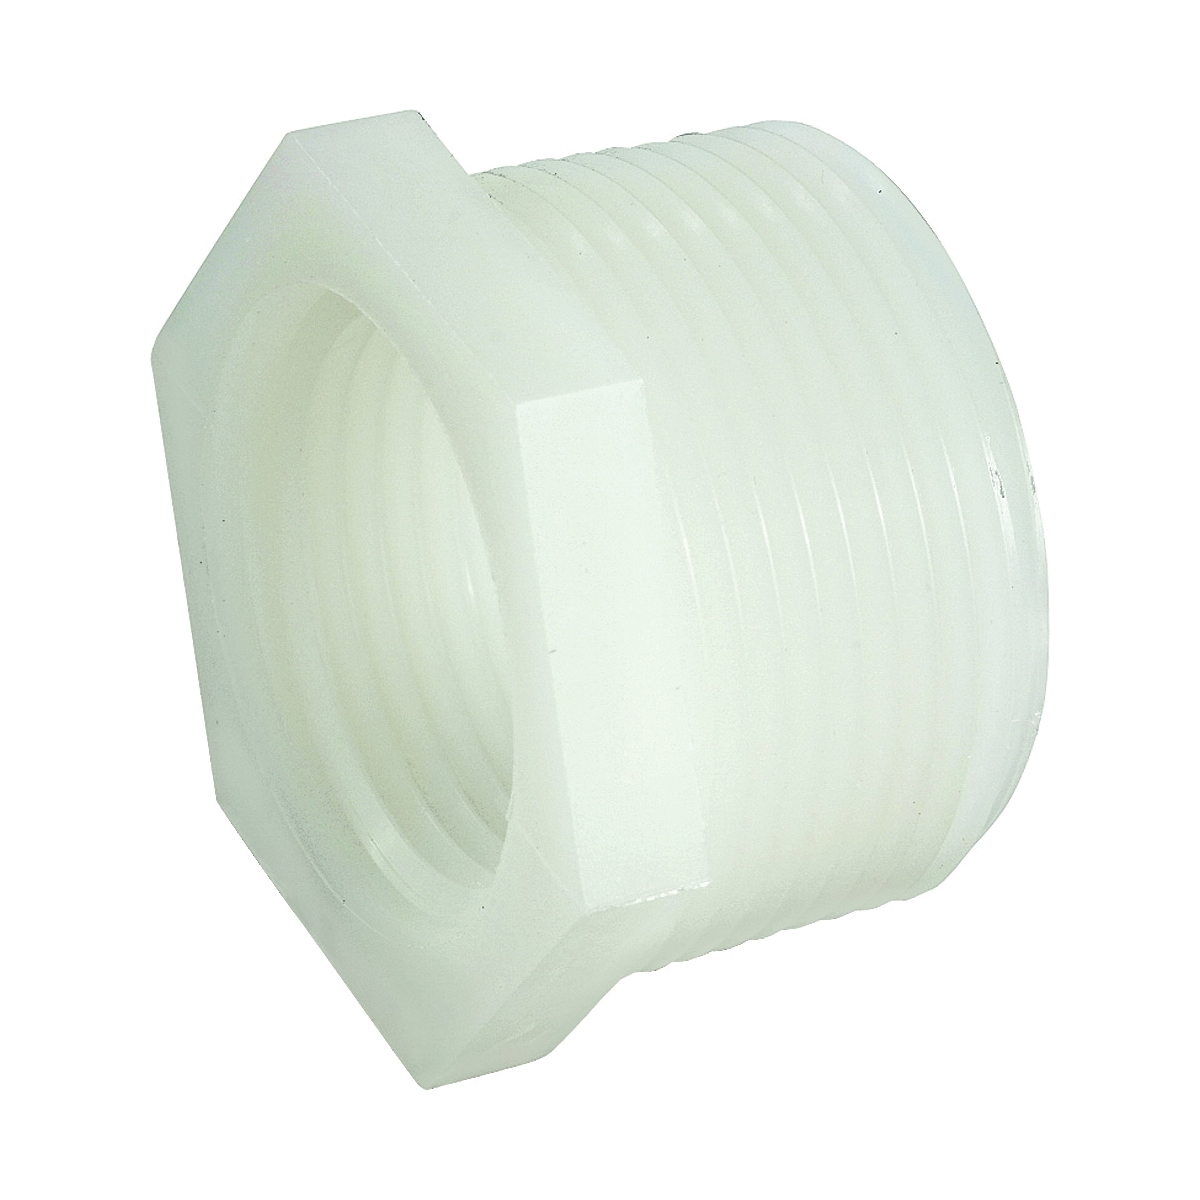 Picture of Anderson Metals 53610-0804 Pipe Reducing Bushing, 1/2 x 1/4 in, Male x Female Thread, 150 psi Pressure